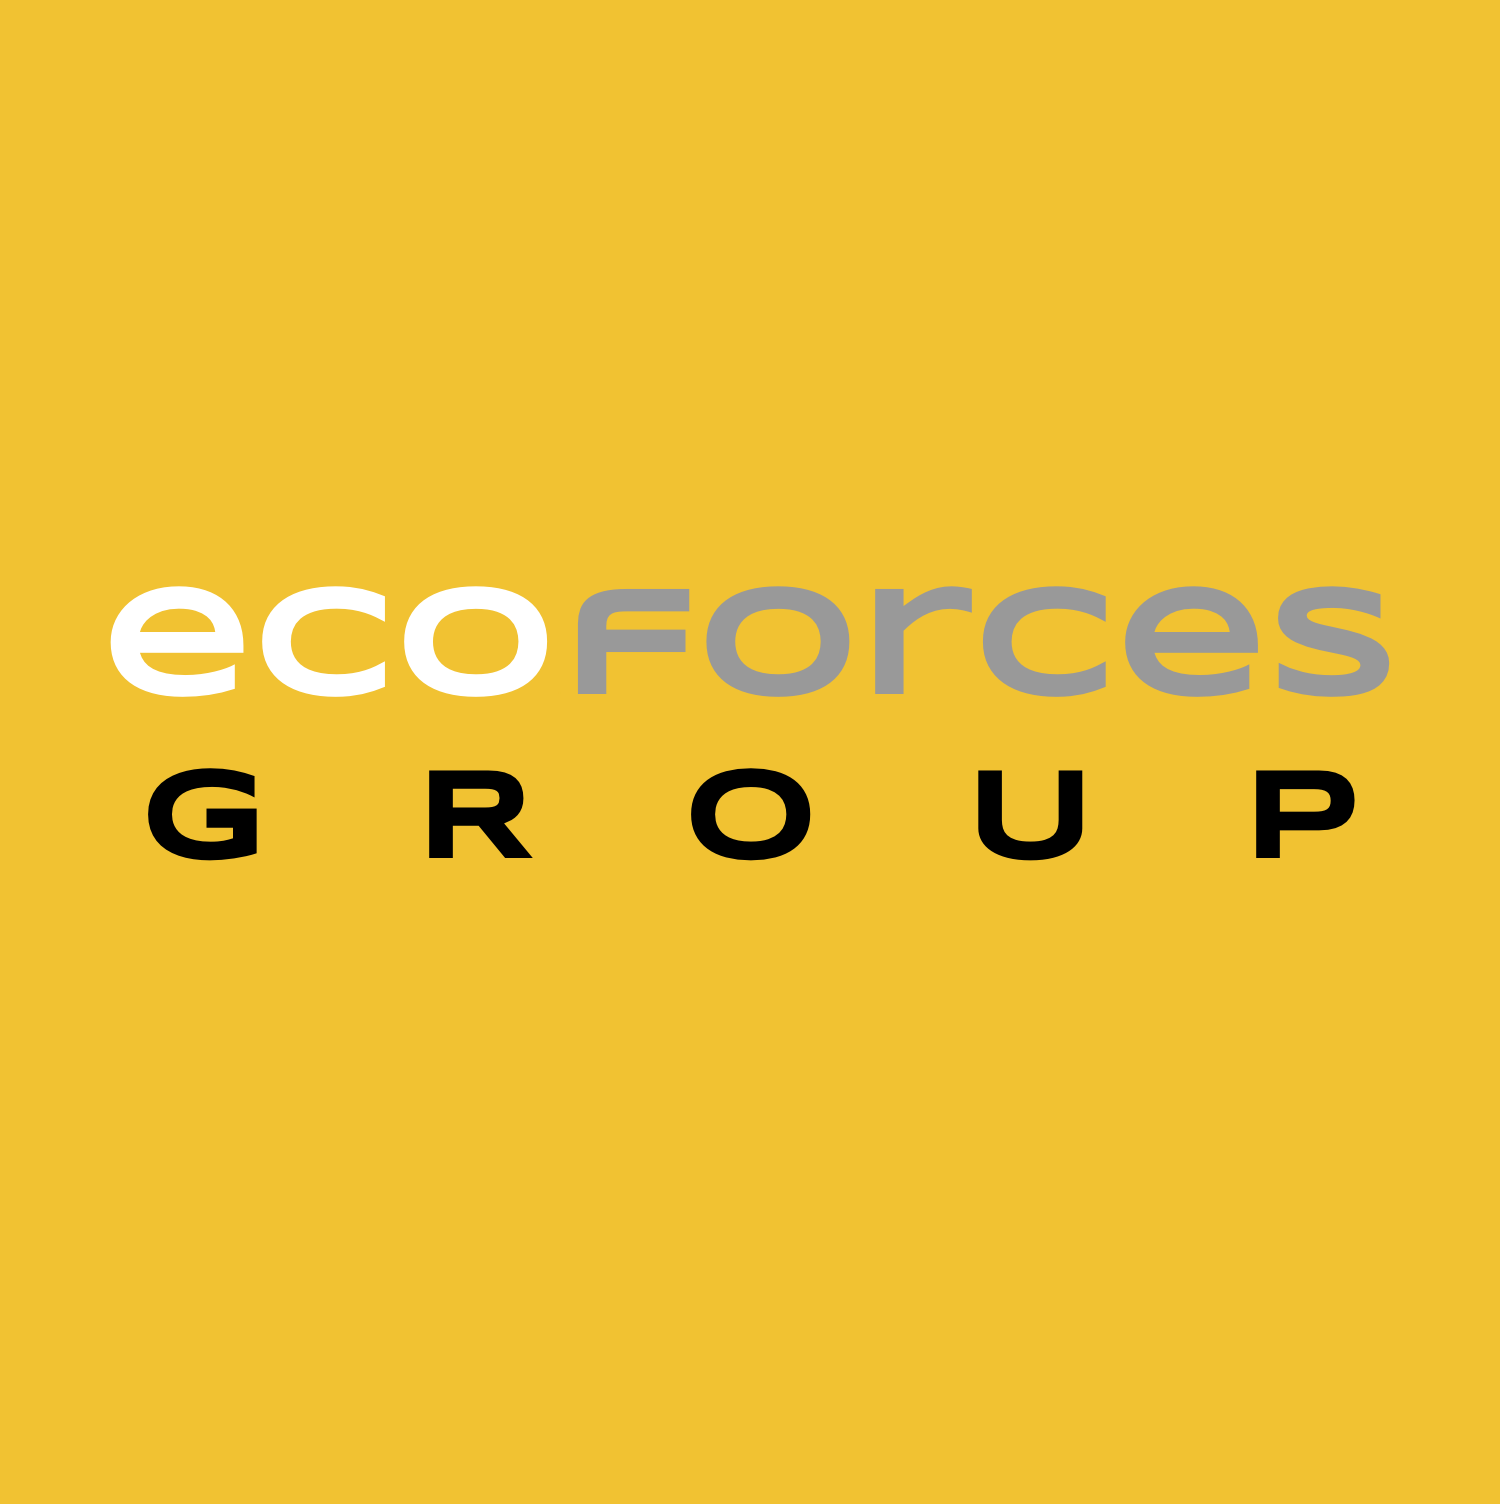 EcoForces Group